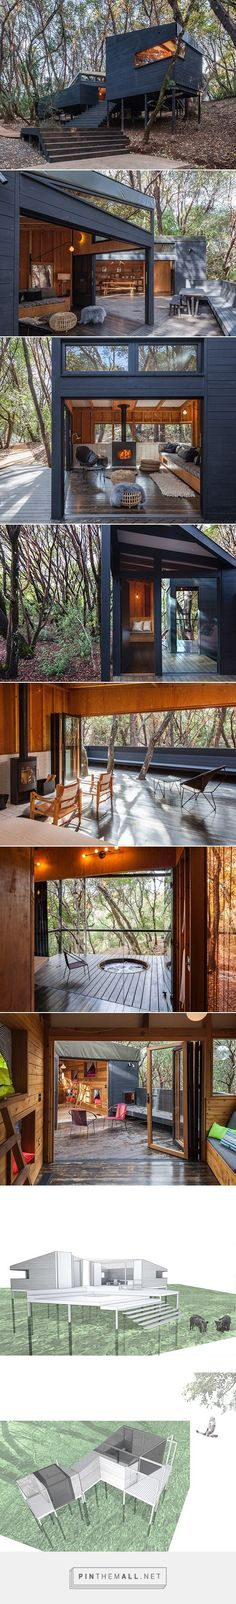 Forest House - envelopeA+D - created on 2016-10-10 05:52:15